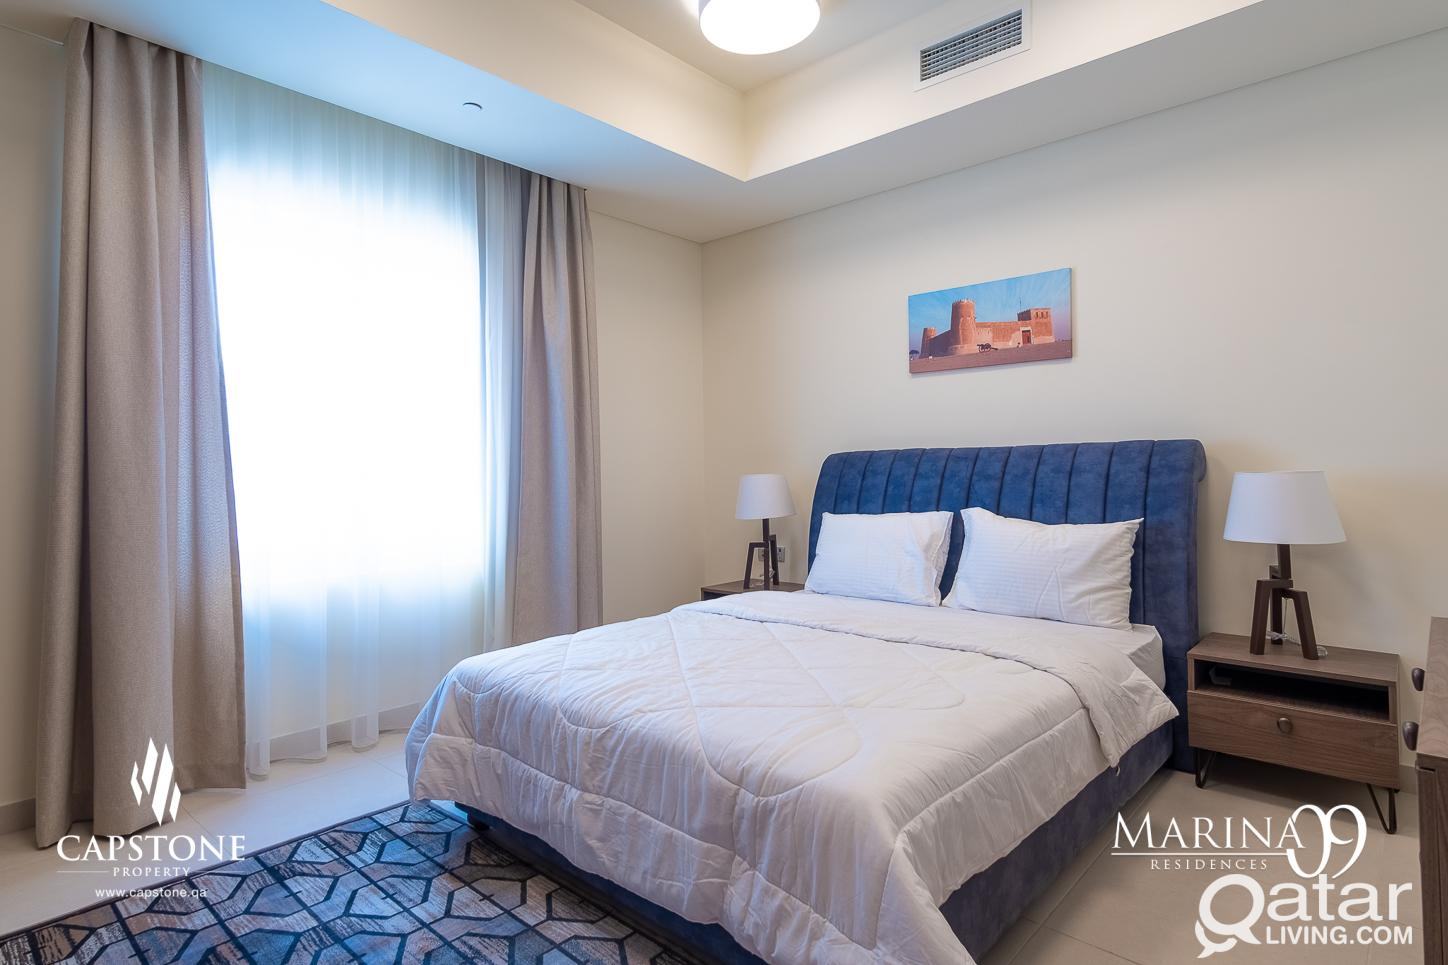 ALL BILLS INCLUDED! Brand New 3BR + Maid's room, S